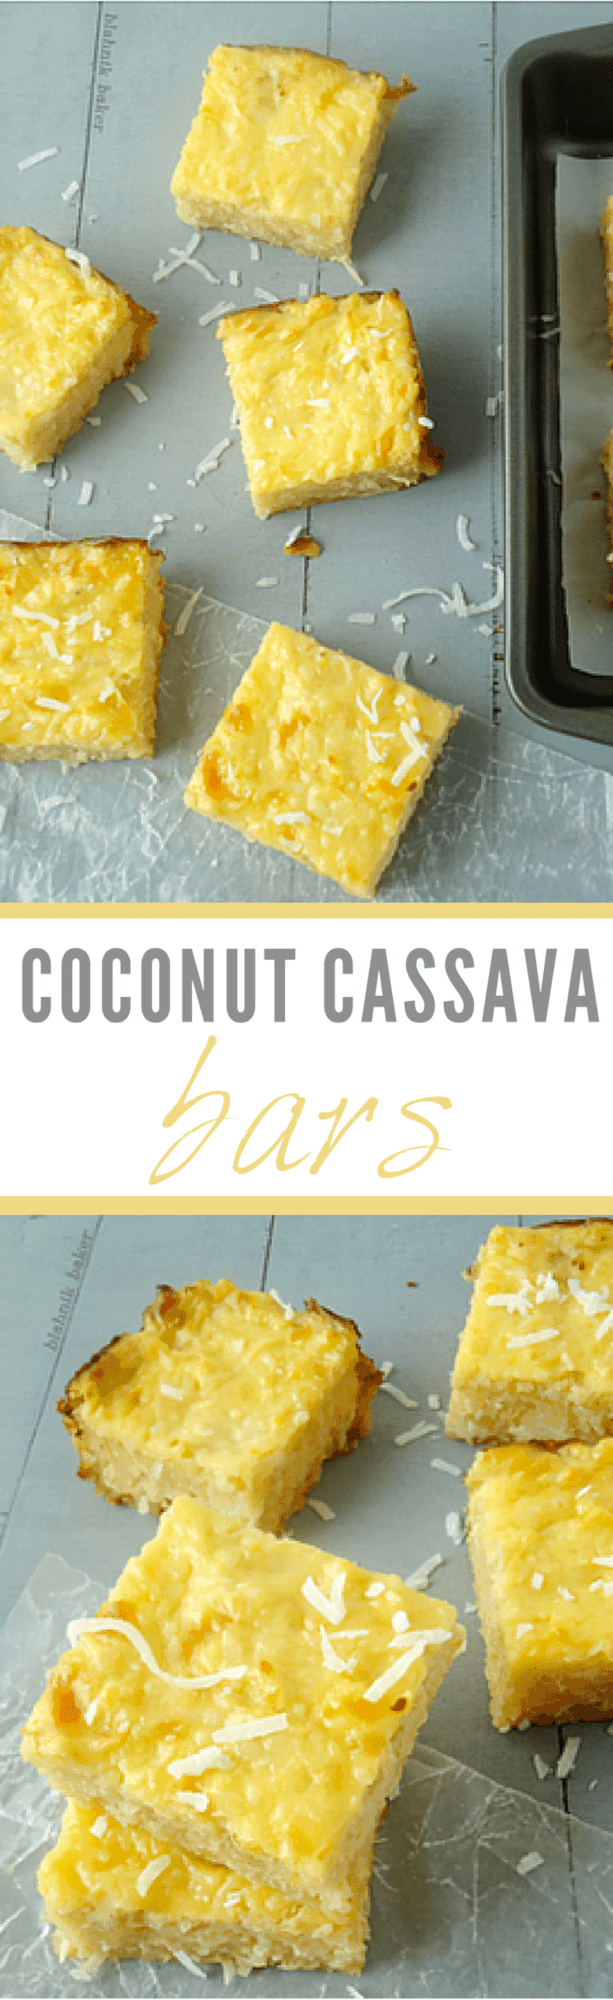 Coconut Cassava Bars Recipes From A Pantry